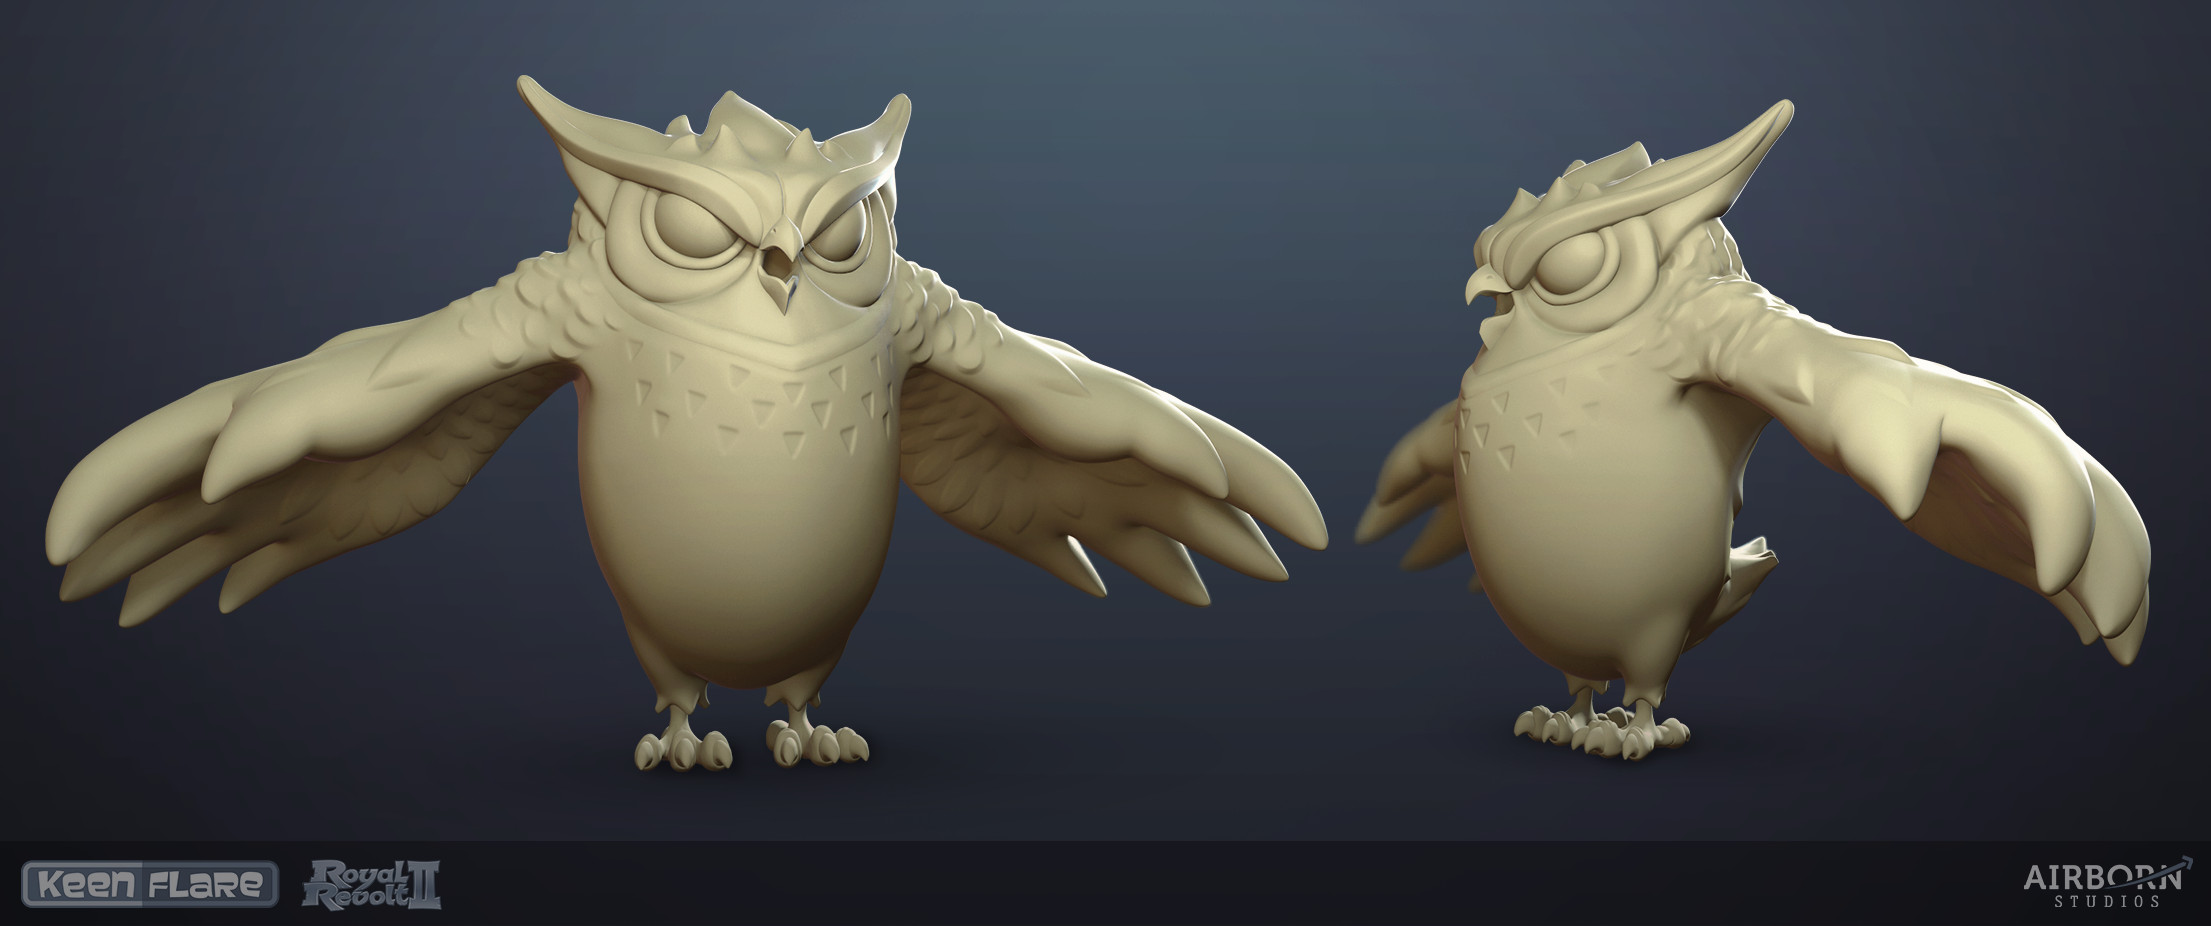 Royal Revolt 2: Twisted Archimedes high-poly model by Tim Moreels